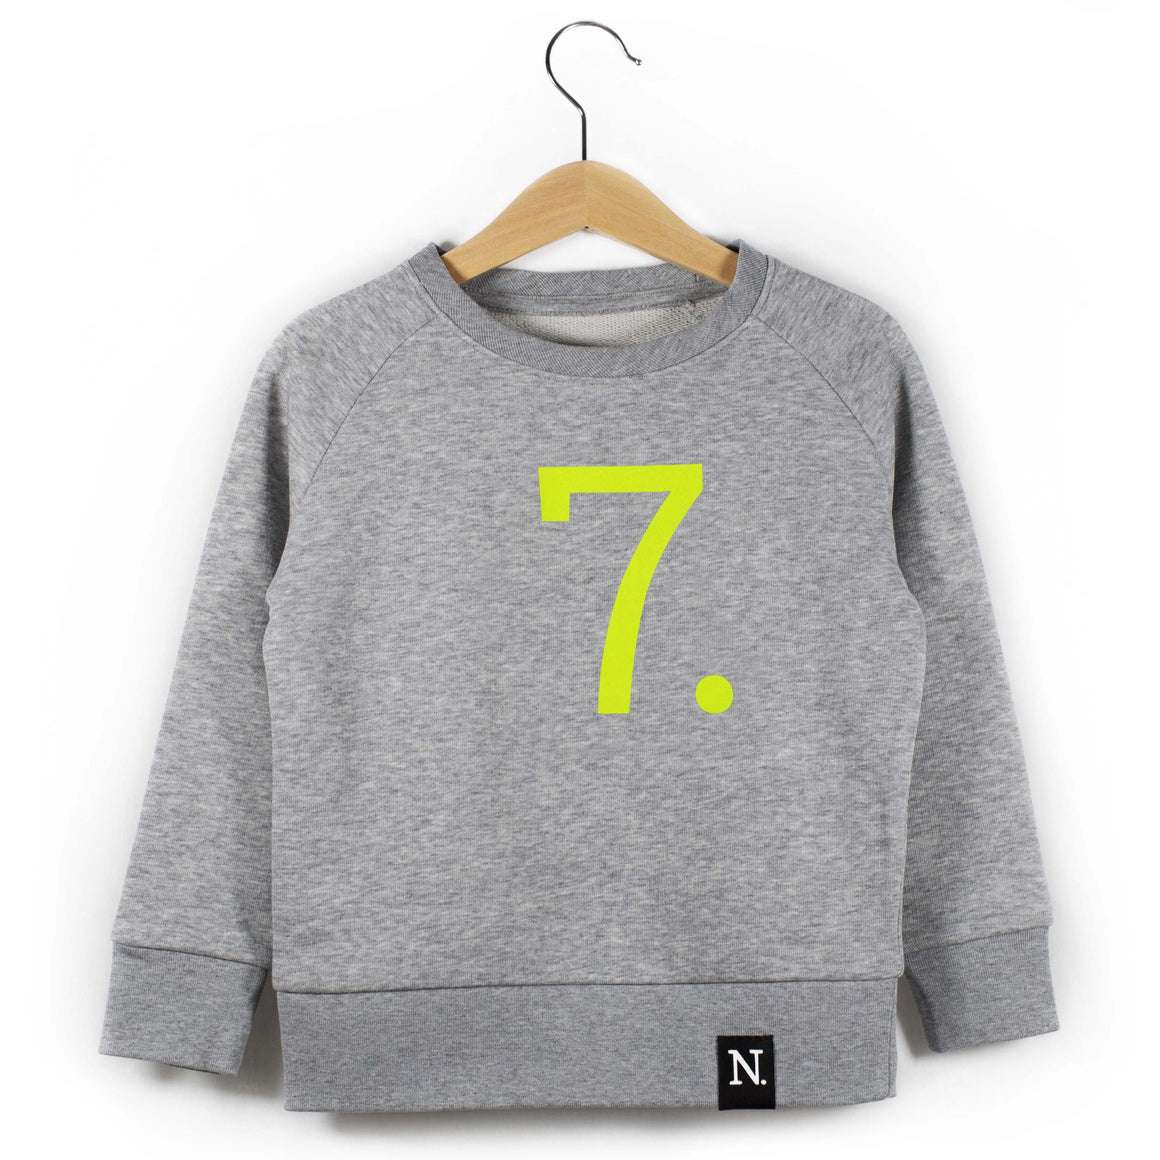 The Number 7 grey sweatshirt front